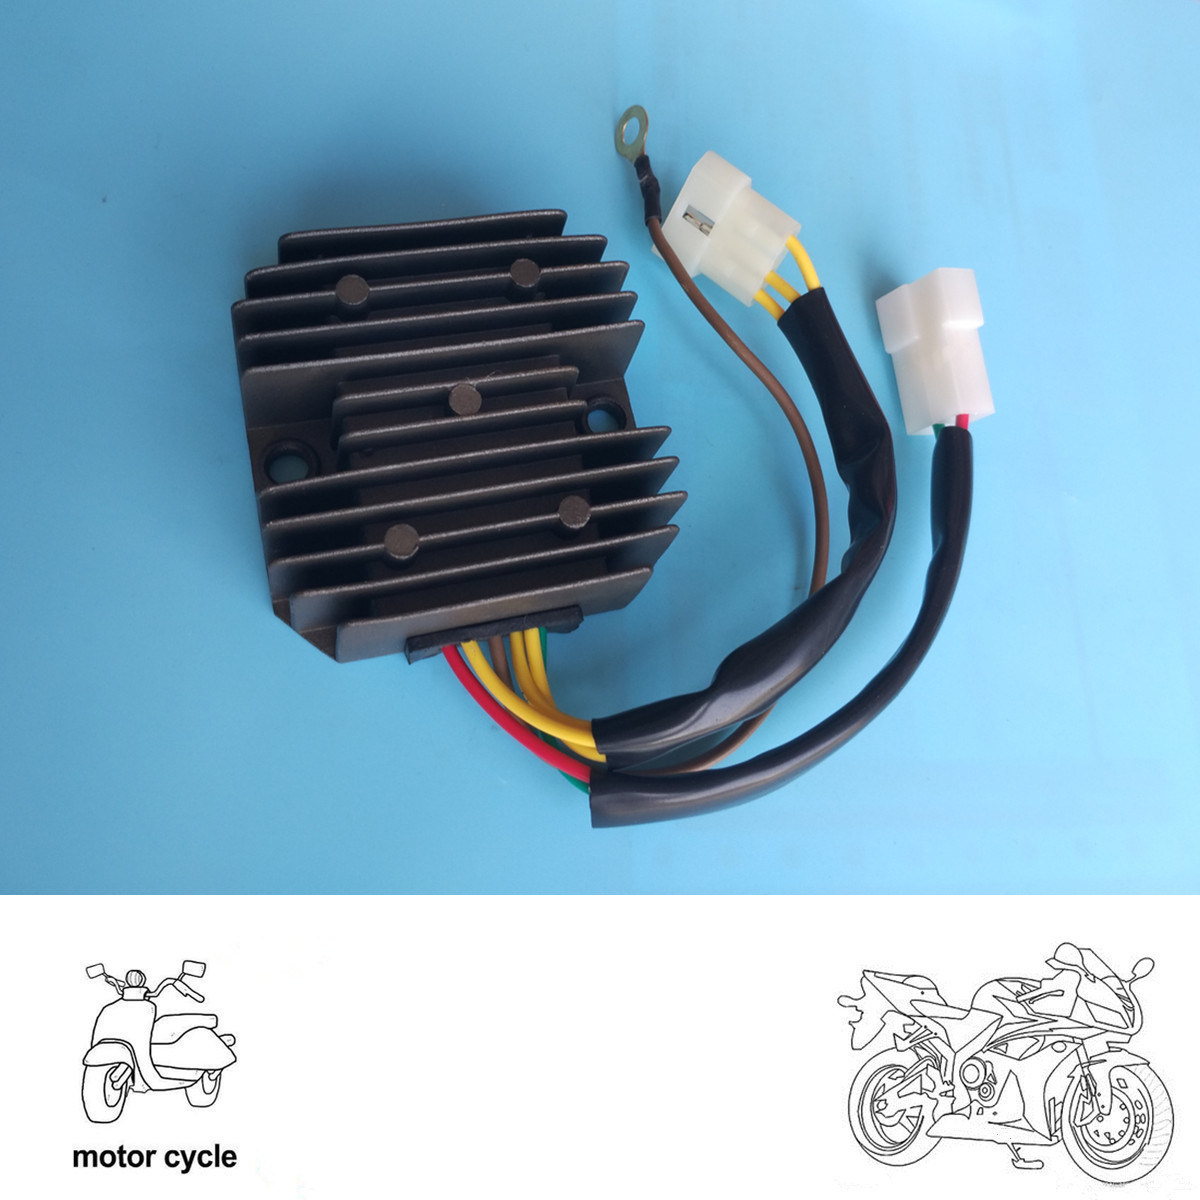 China Sh532b 12 For Bmw F650 G650x F800s Aprili Motorcycle Voltage F800st Wiring Diagram Regulator Rectifier Accessories Current Rectifiers